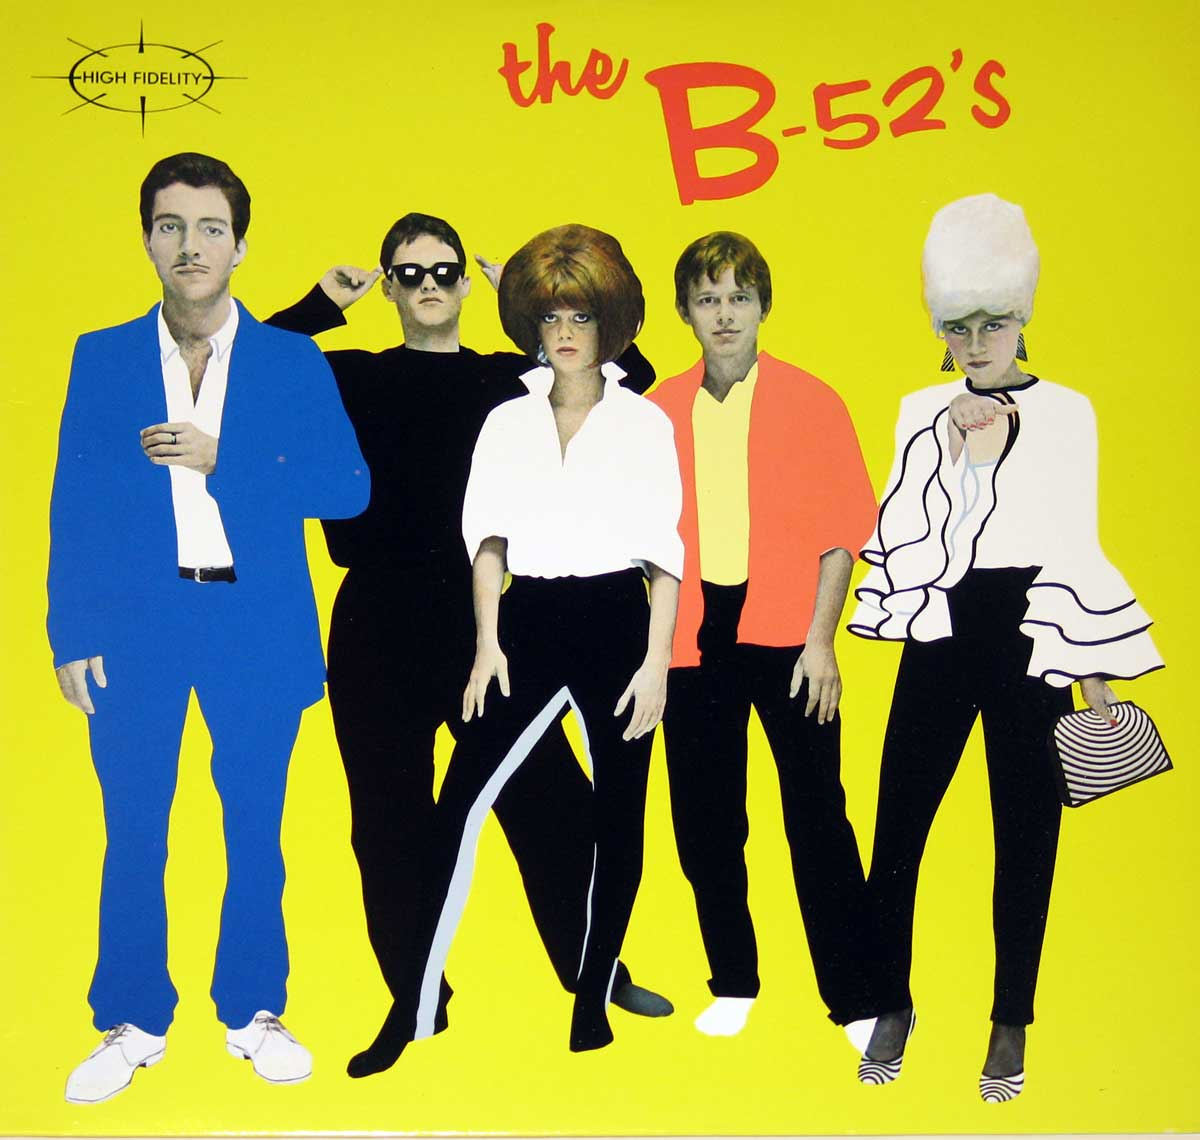 large photo of the album front cover of: THE B-52's